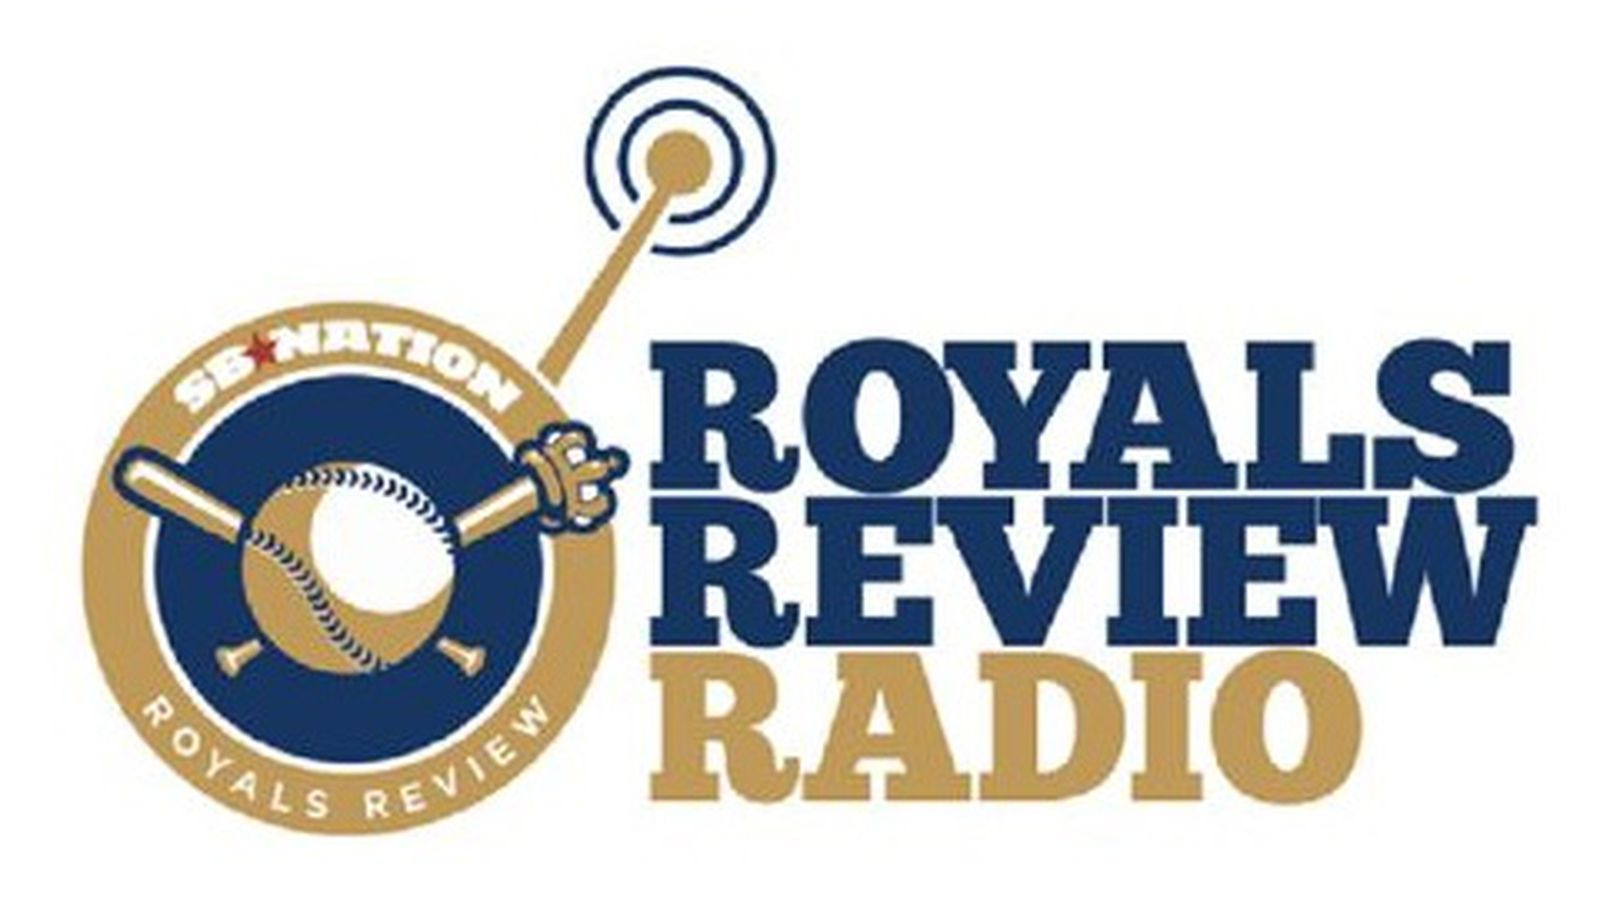 Royals_review_radio.0.0